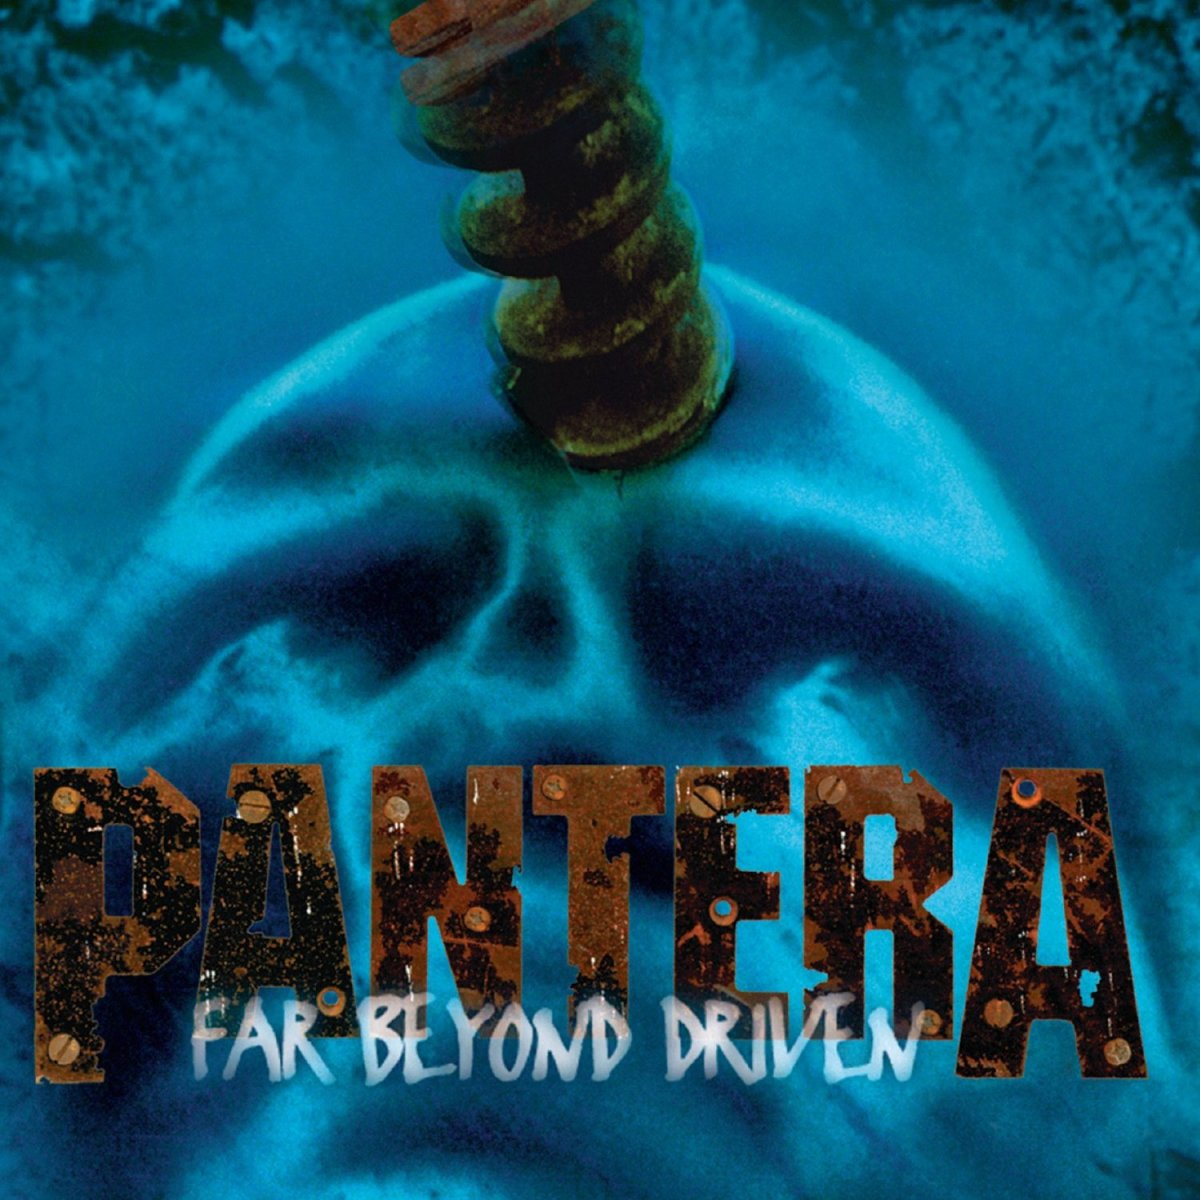 Pantera Far Beyond Driven:The Album That Represents the Decline of a Once Great Band